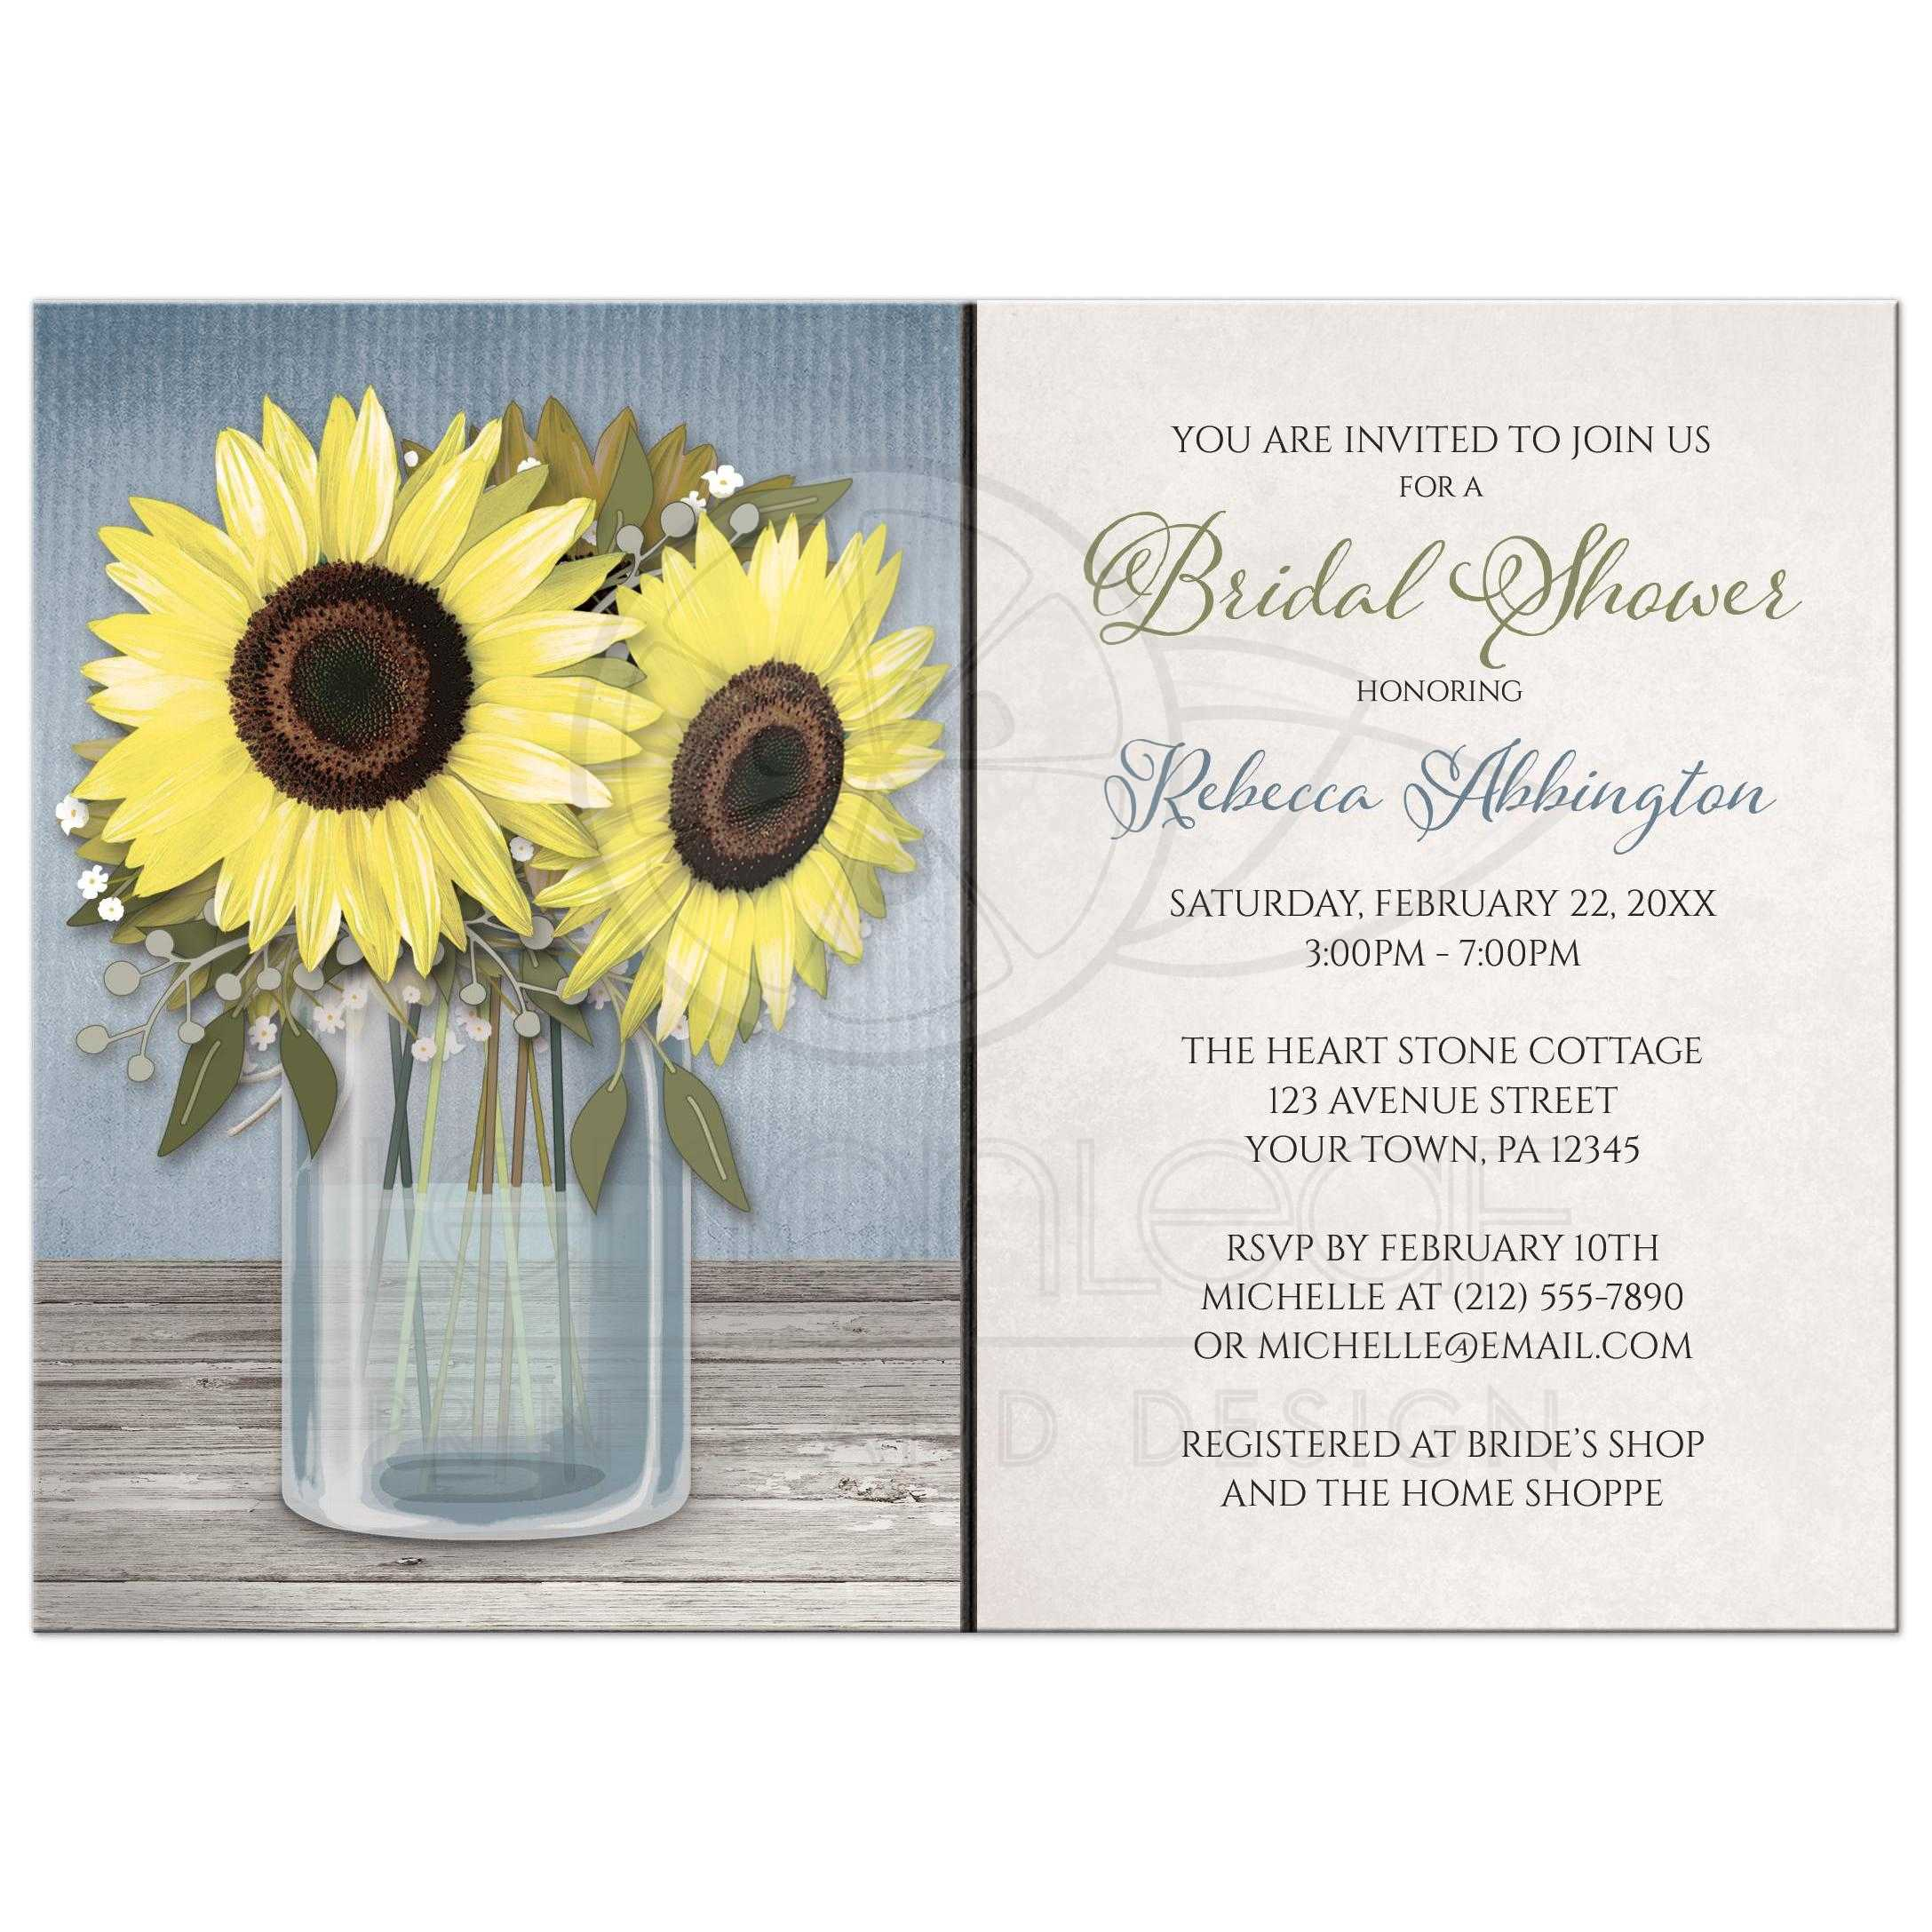 Bridal Shower Invitations - Rustic Sunflower Blue Mason Jar